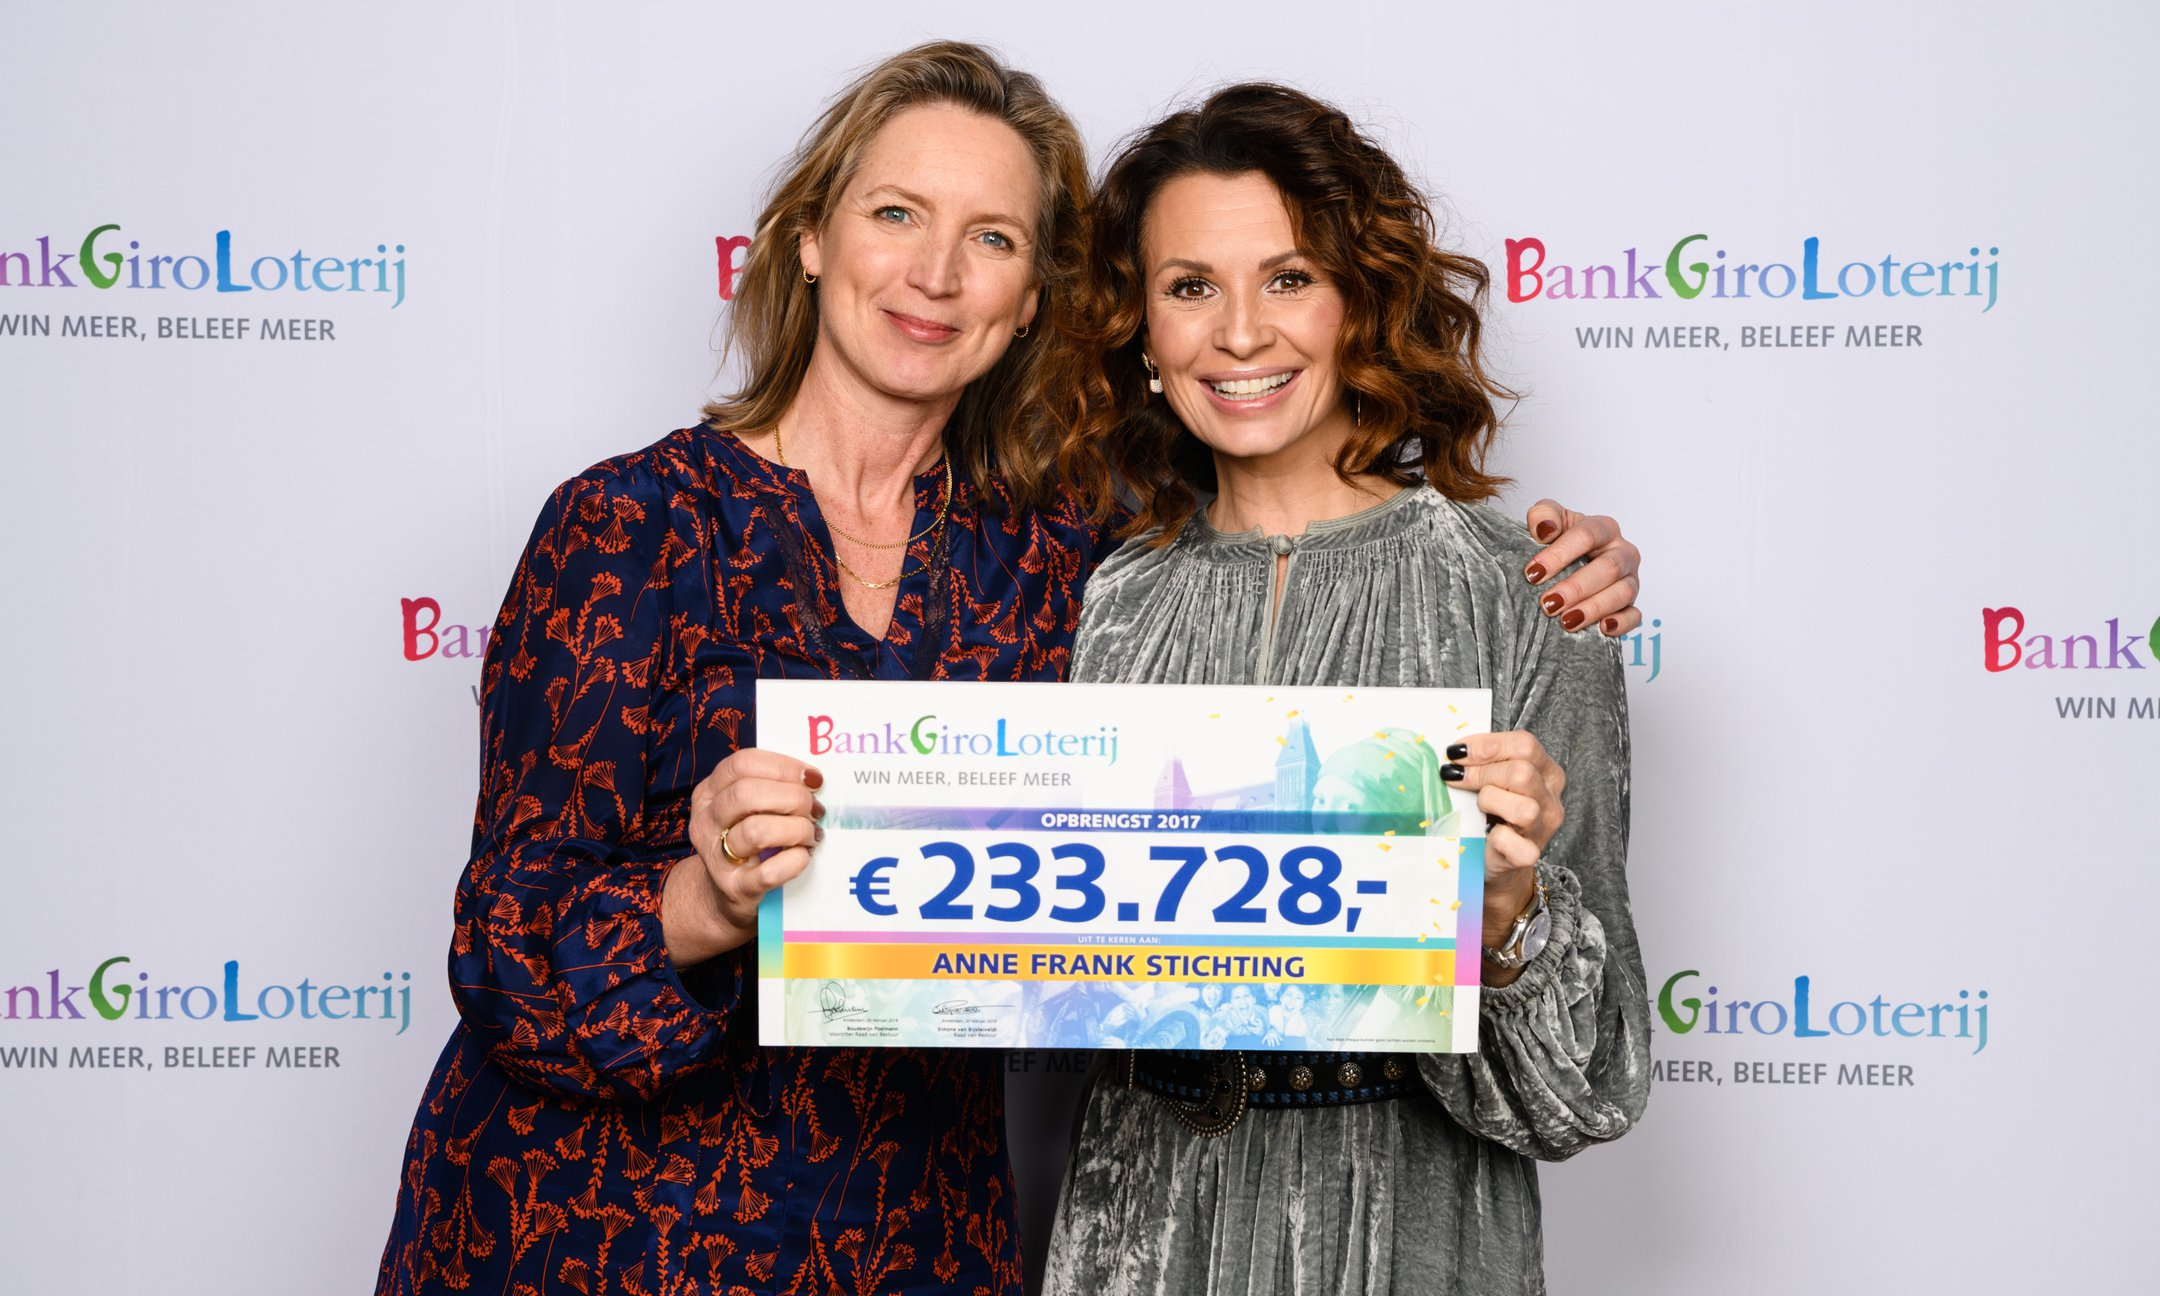 Garance Reus-Deelder, managing director of the Anne Frank Stichting, is presented with the cheque by Leontine Borsato at the Goed Geld Gala